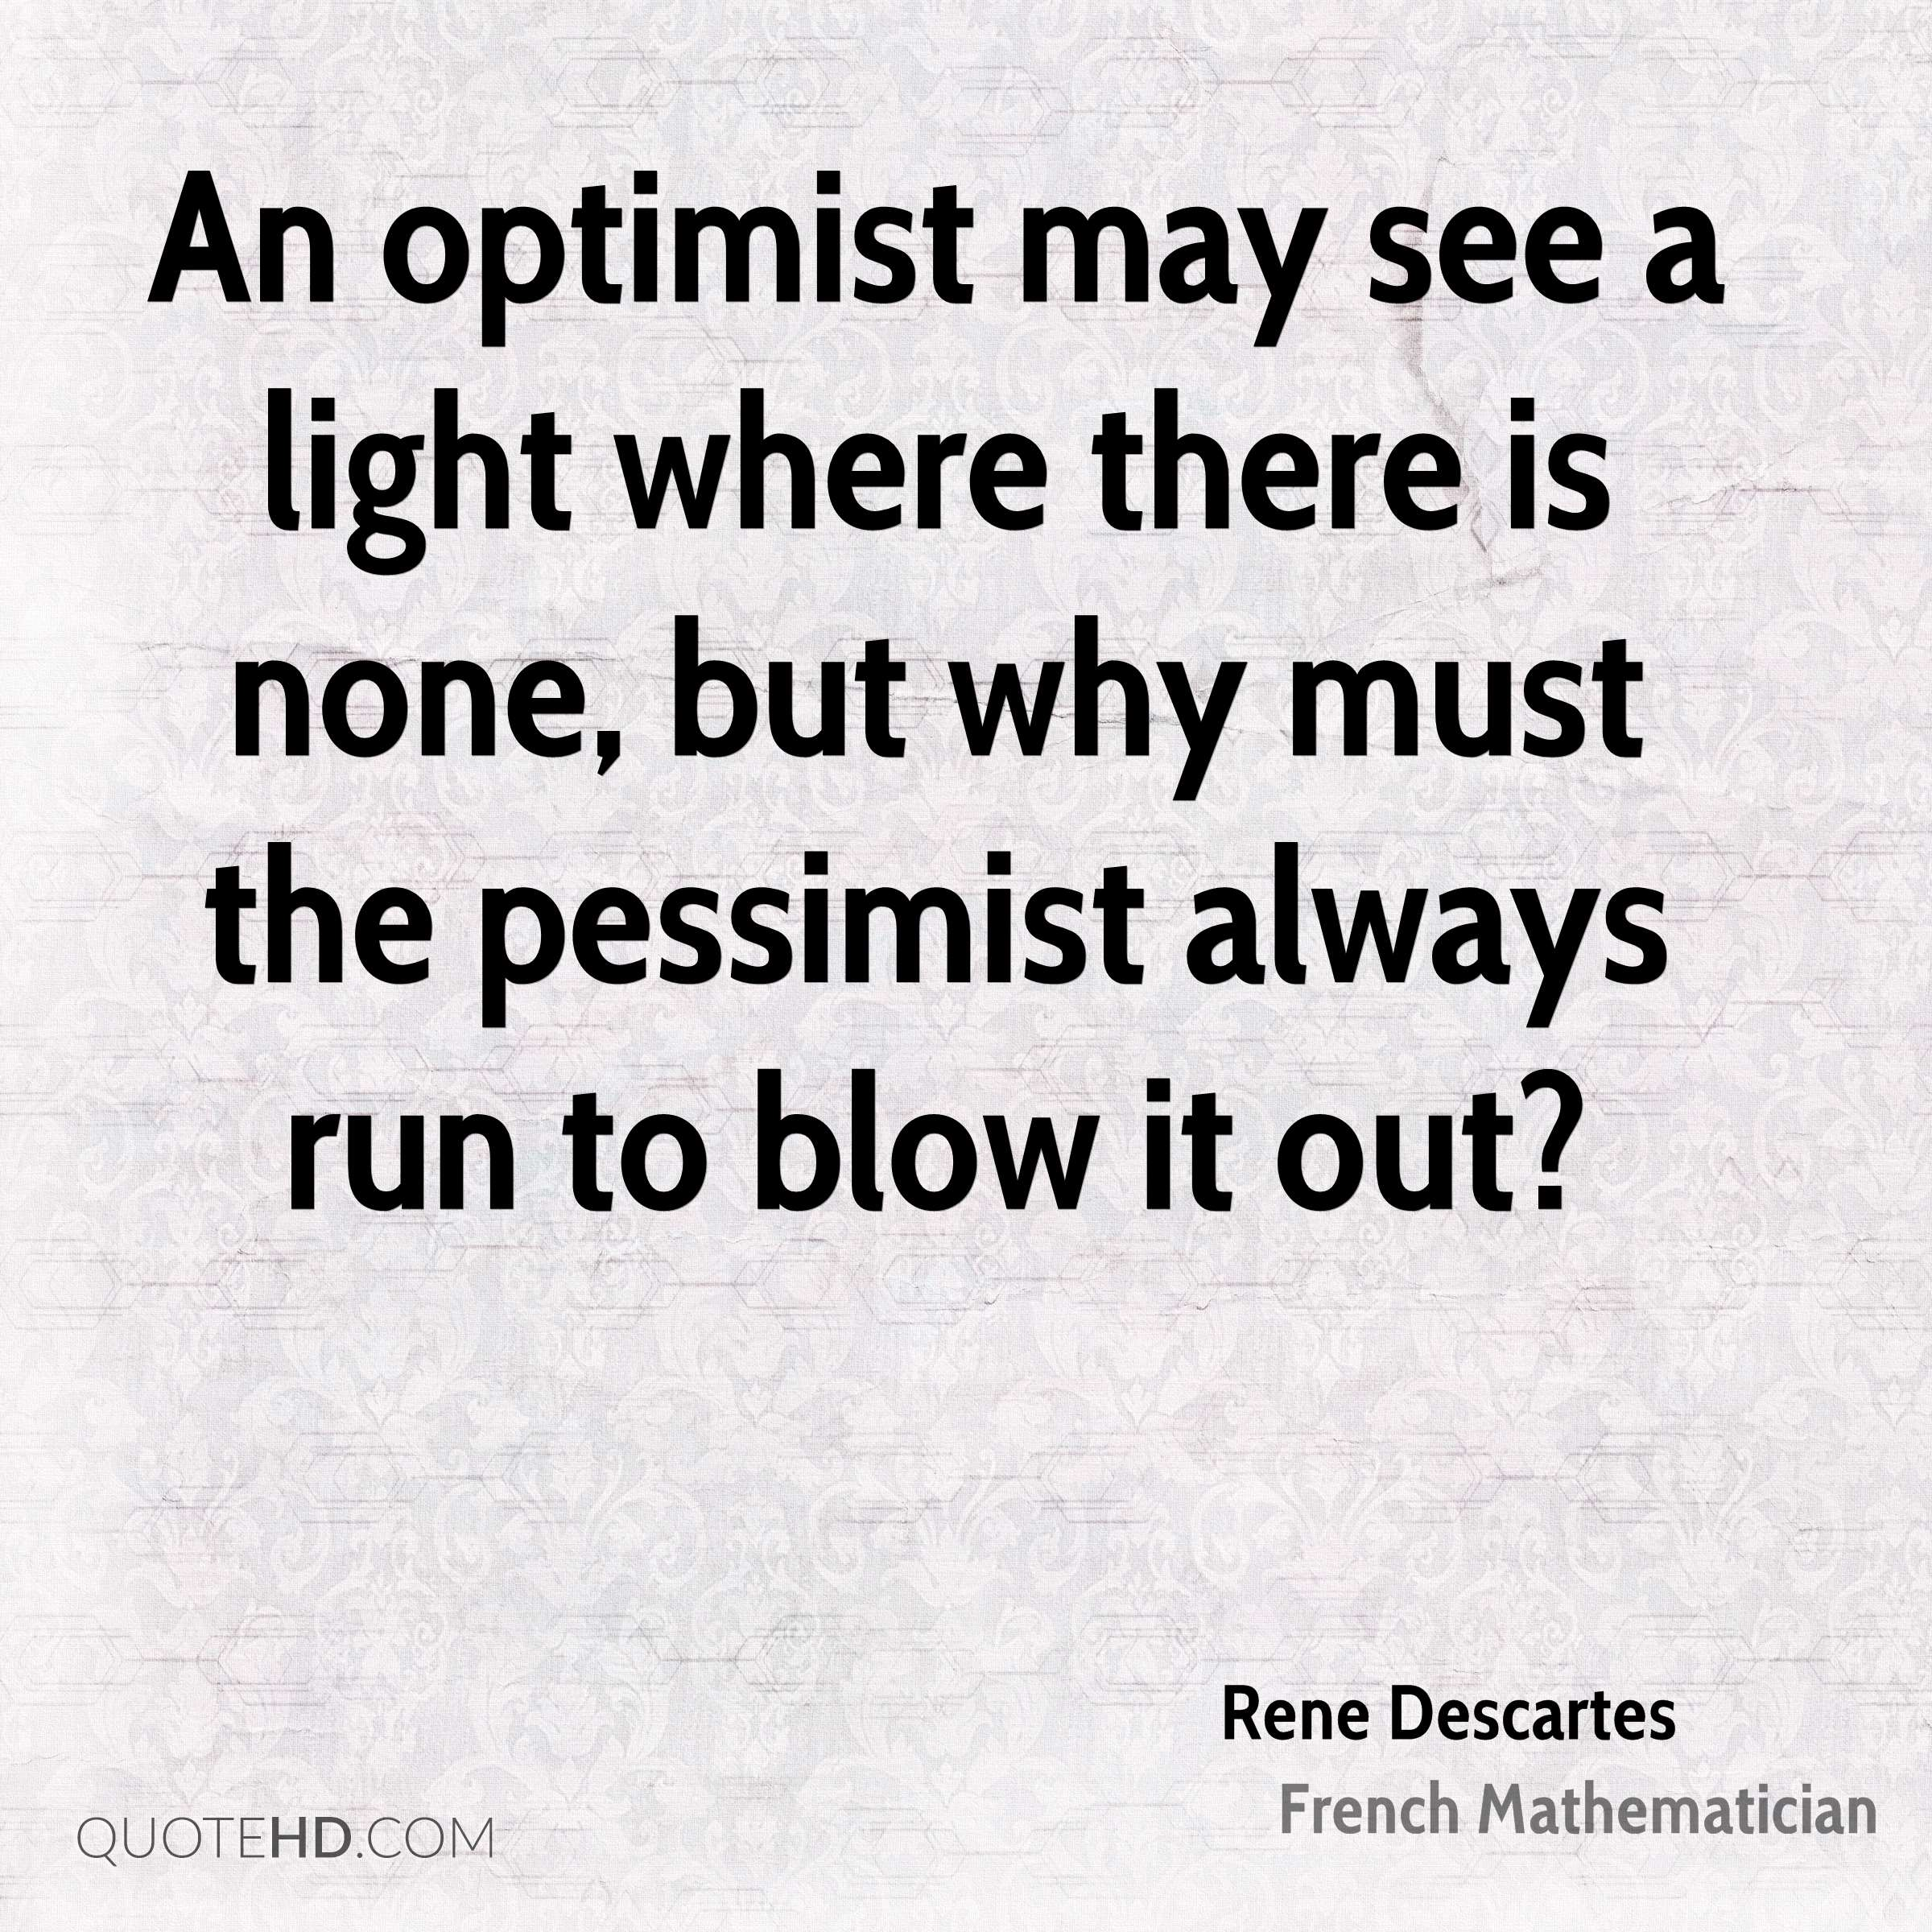 An Optimist May See A Light Where There Is None, But Why Must The Pessimist